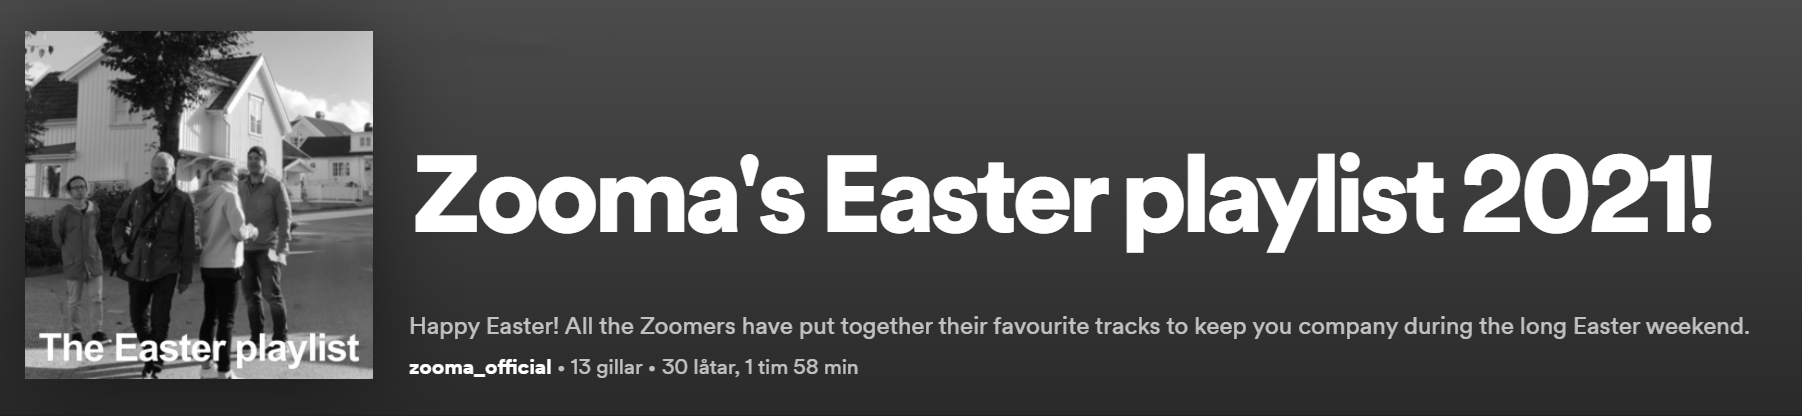 Zooma-easter-playlist